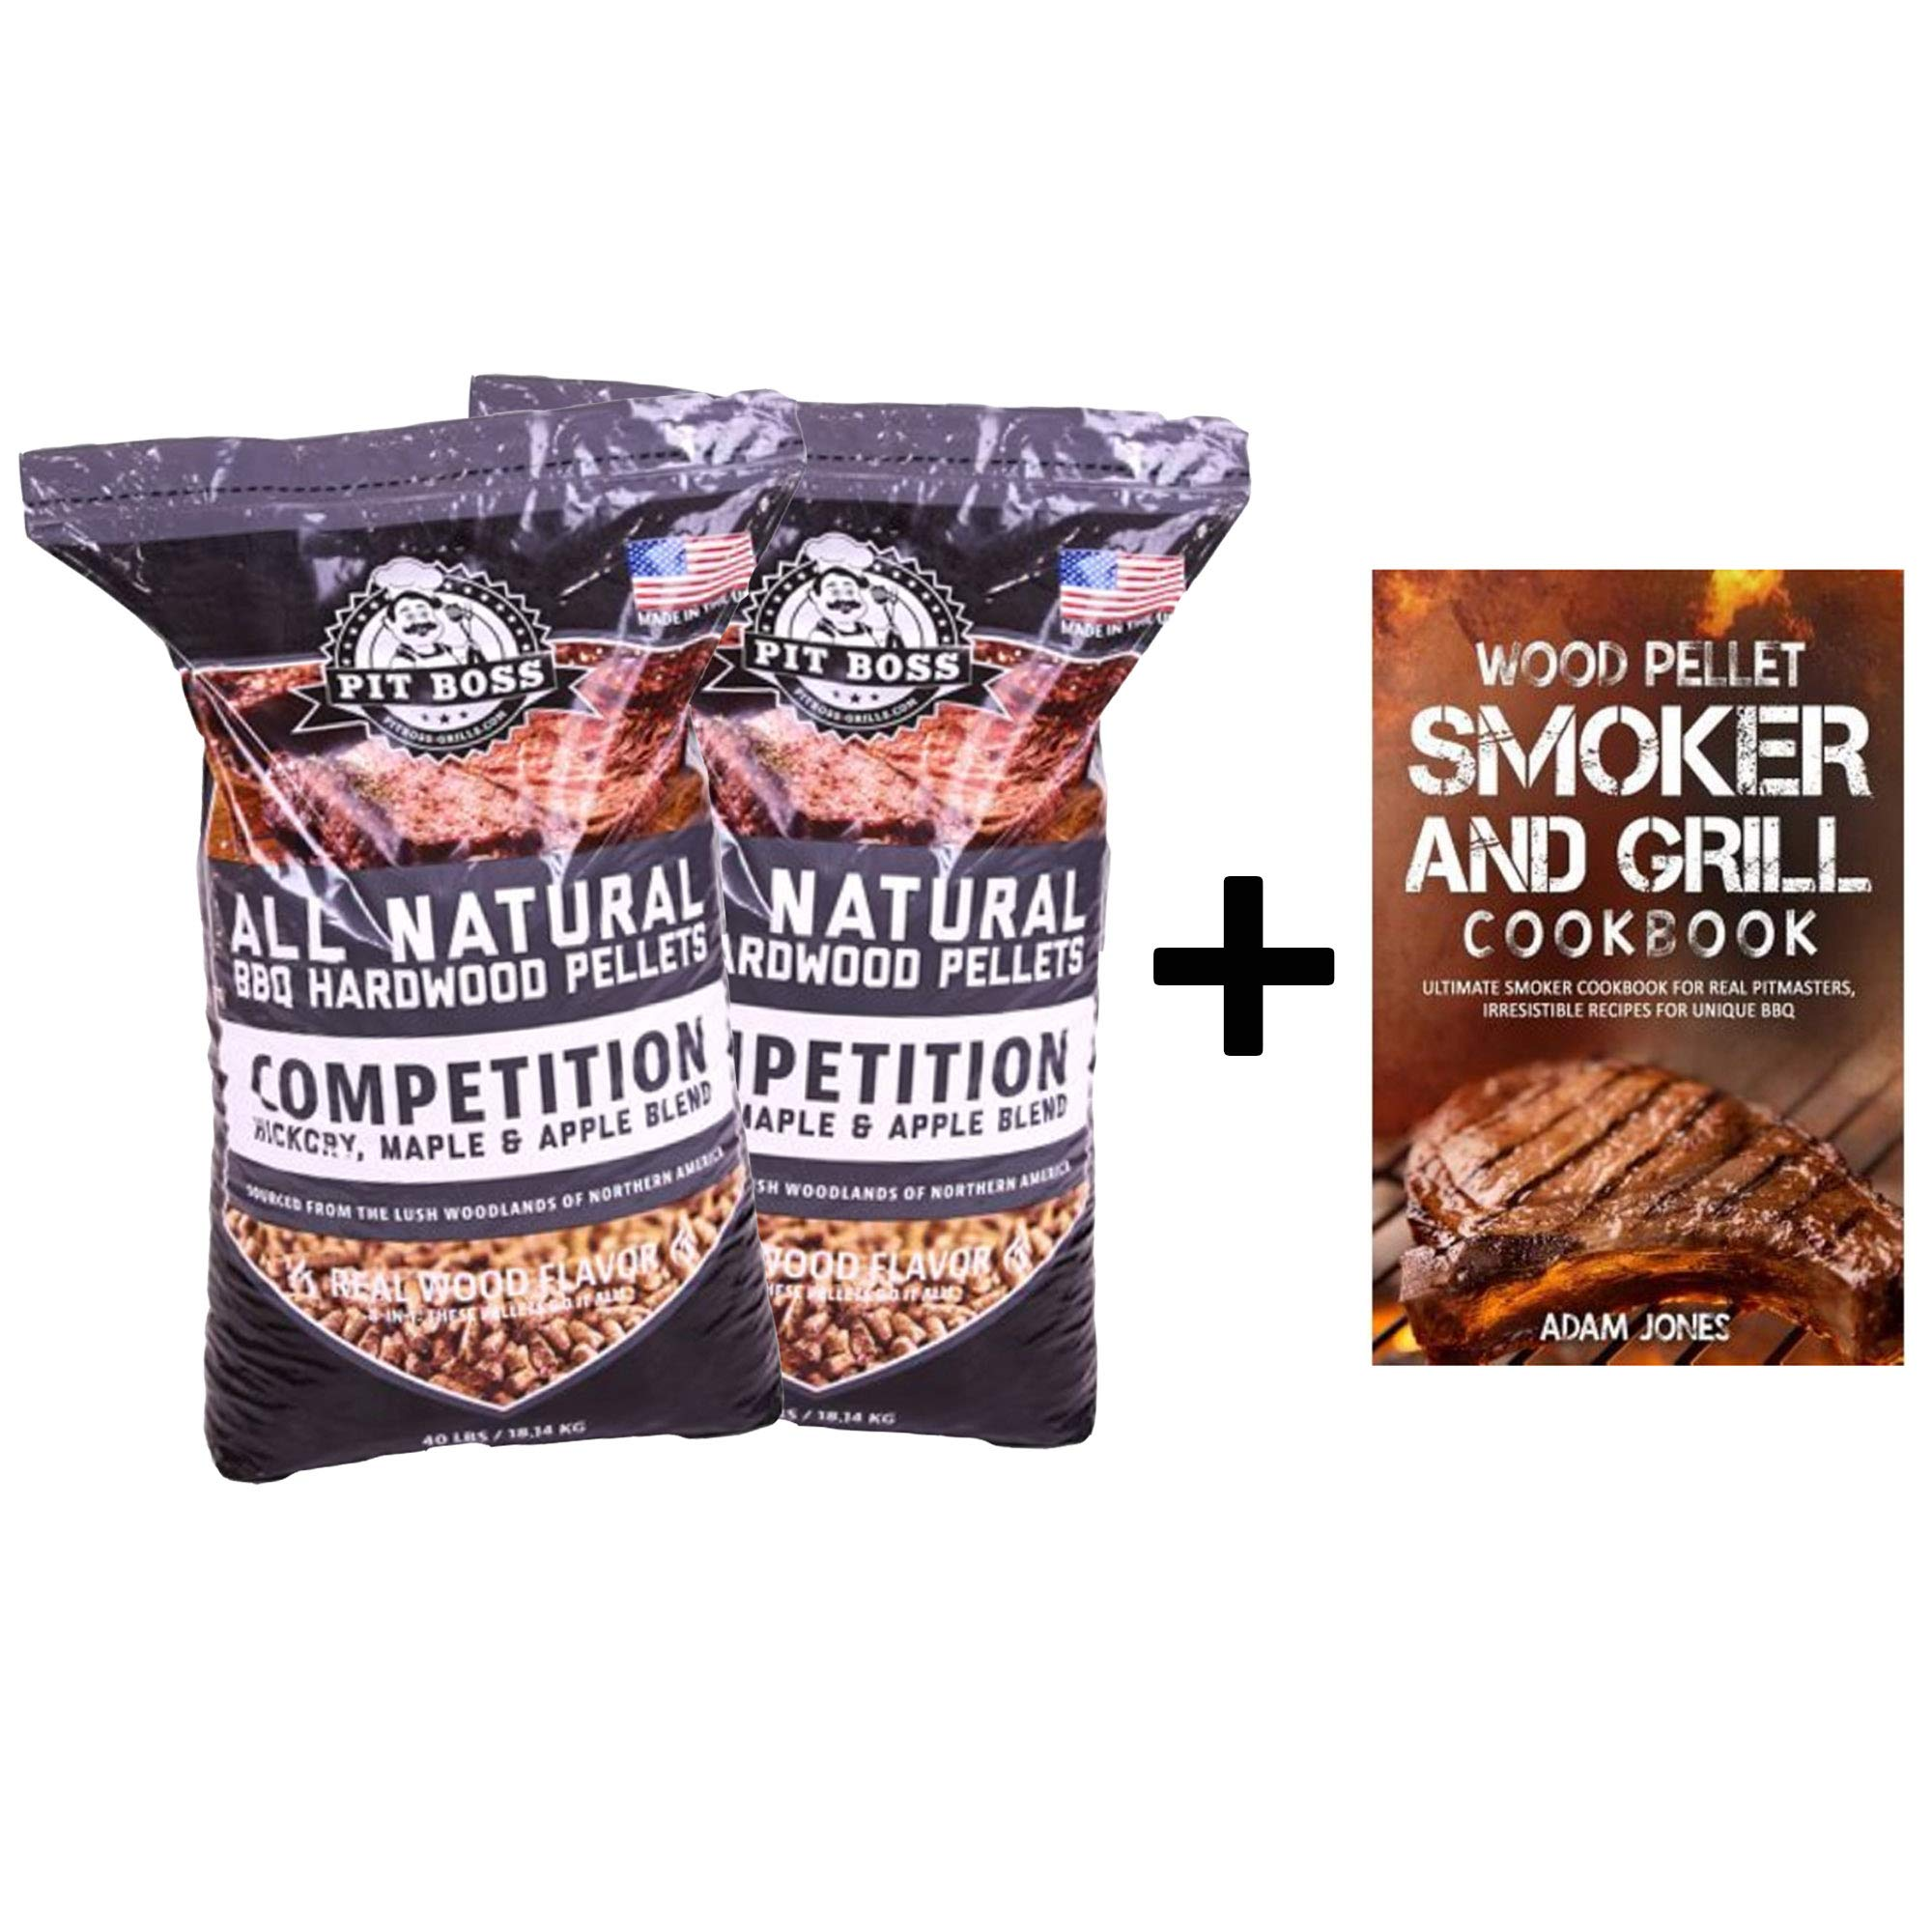 Pit Boss (2 Pack Competition Blend BBQ Wood Pellets - 40 lb Resealable Bag with Pellet Barbeque Cookbook by Pit Boss